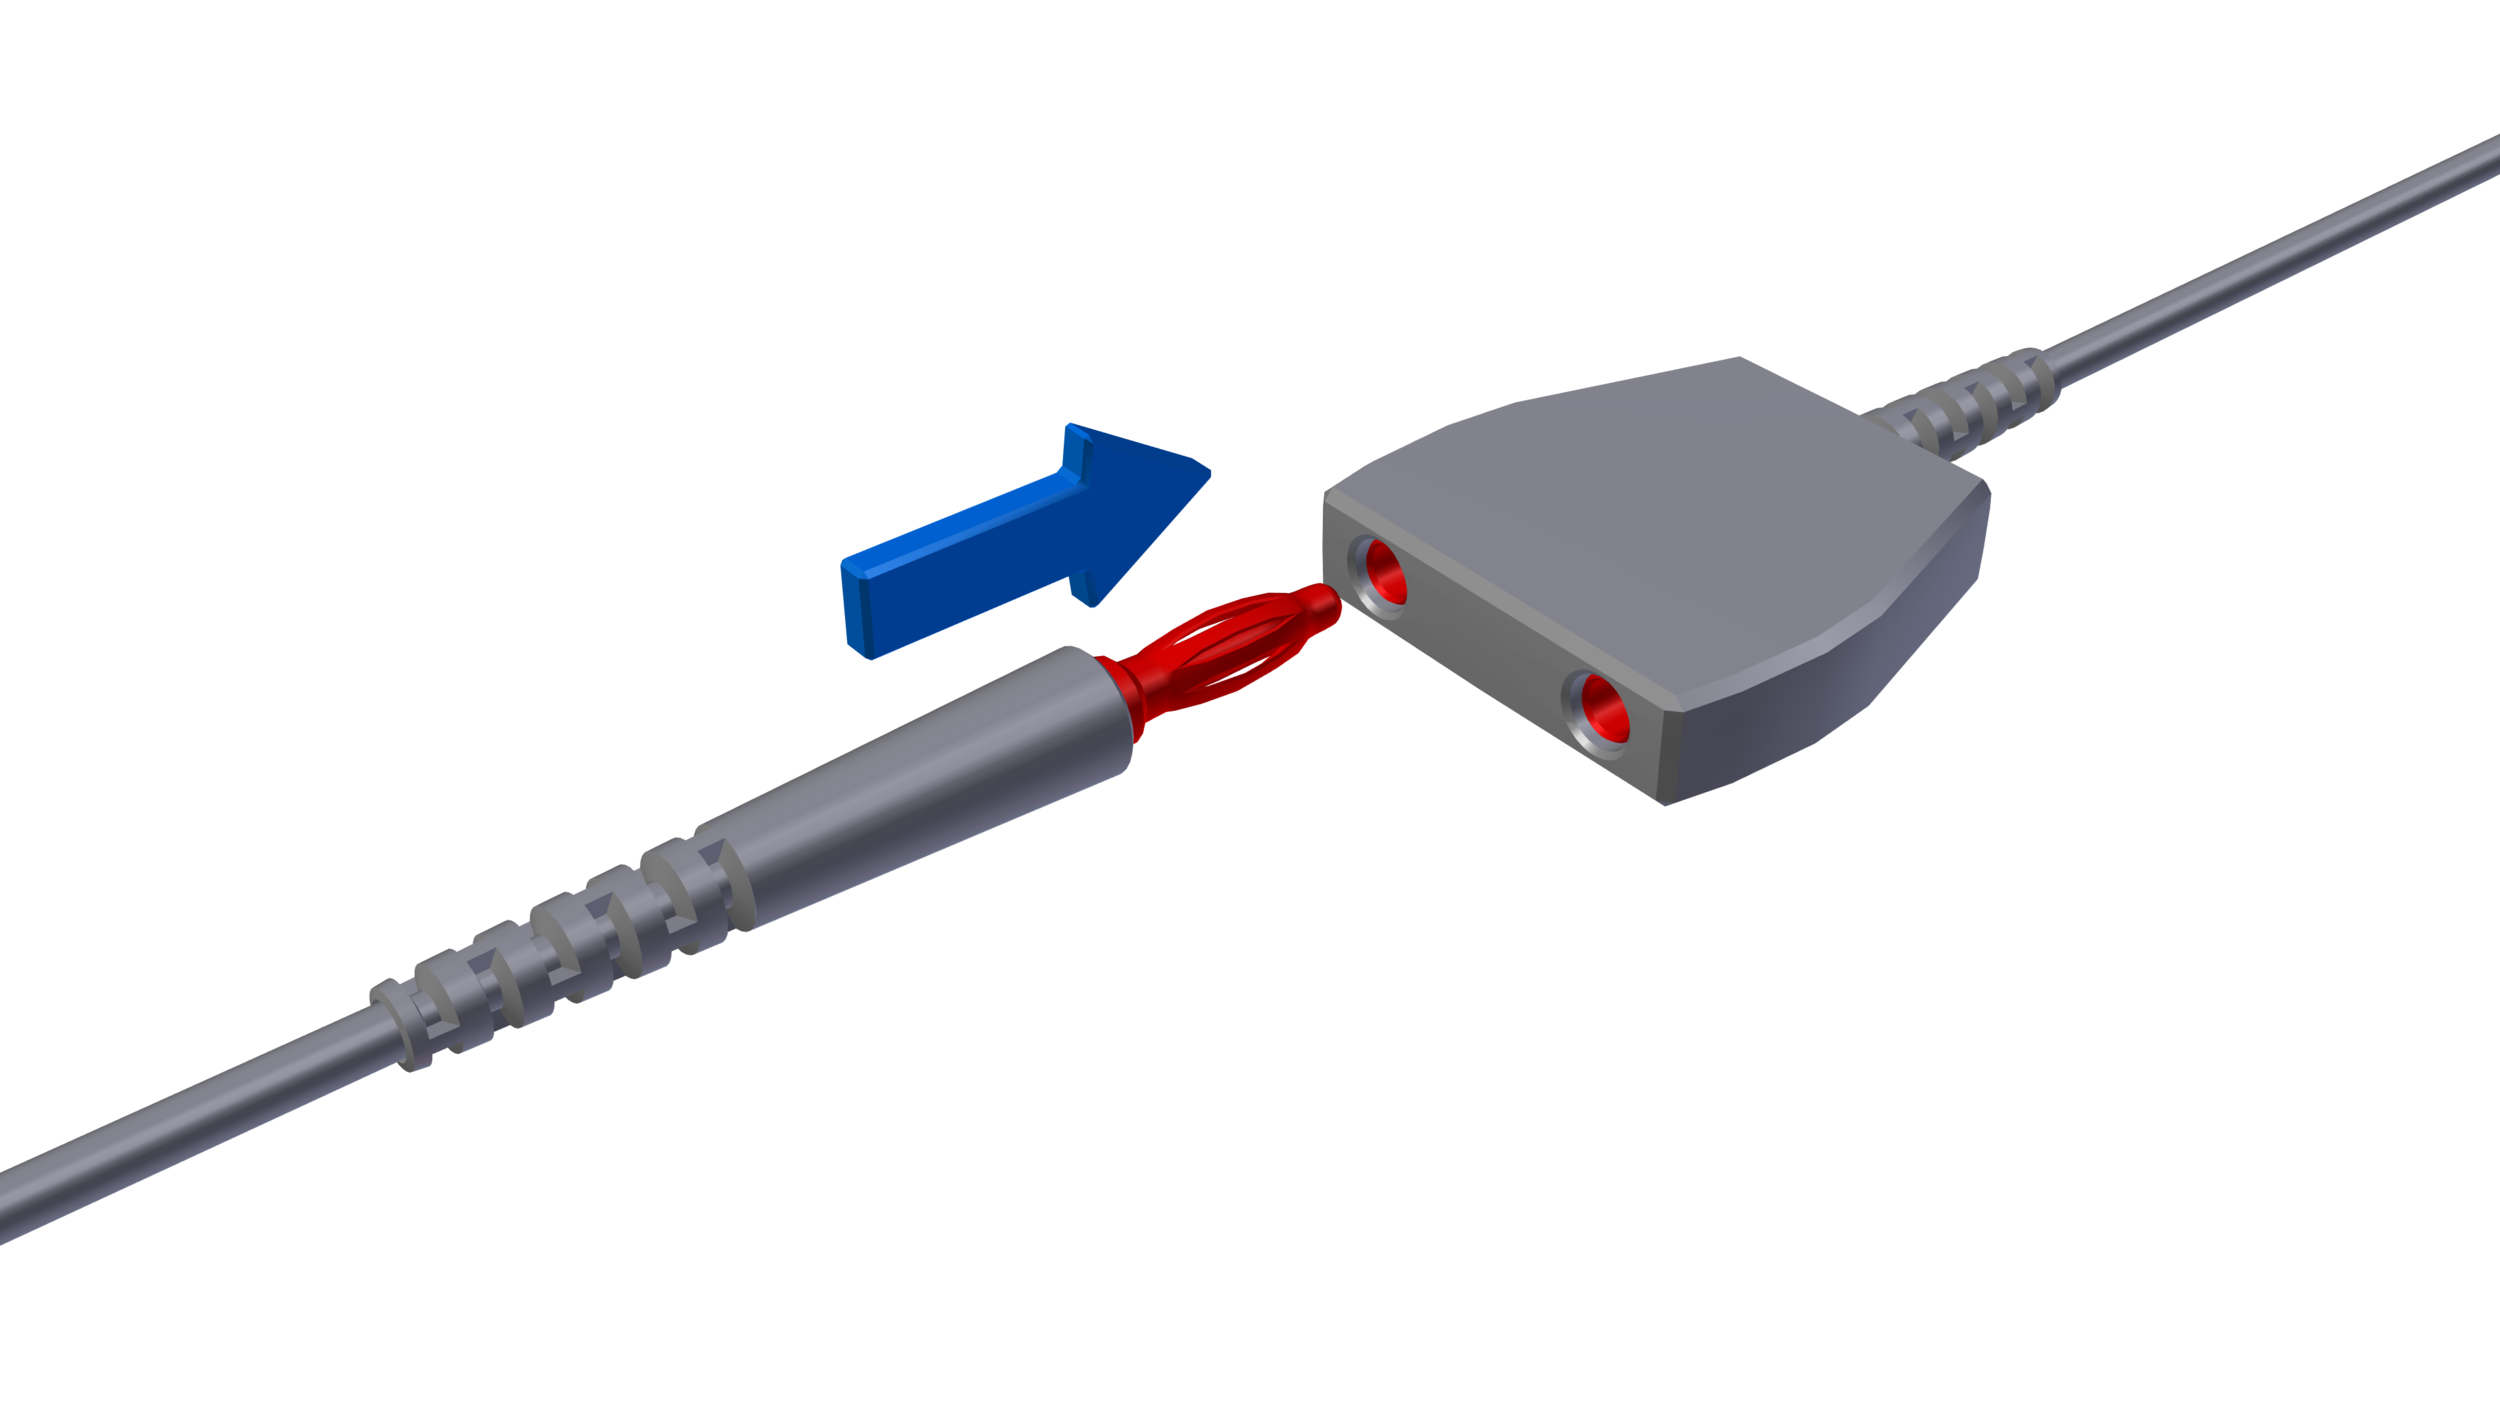 Figure 2: Detach the alligator clip (if included) from the terminal end of the anti-static wrist strap. Insert the banana plug into the common ground point.